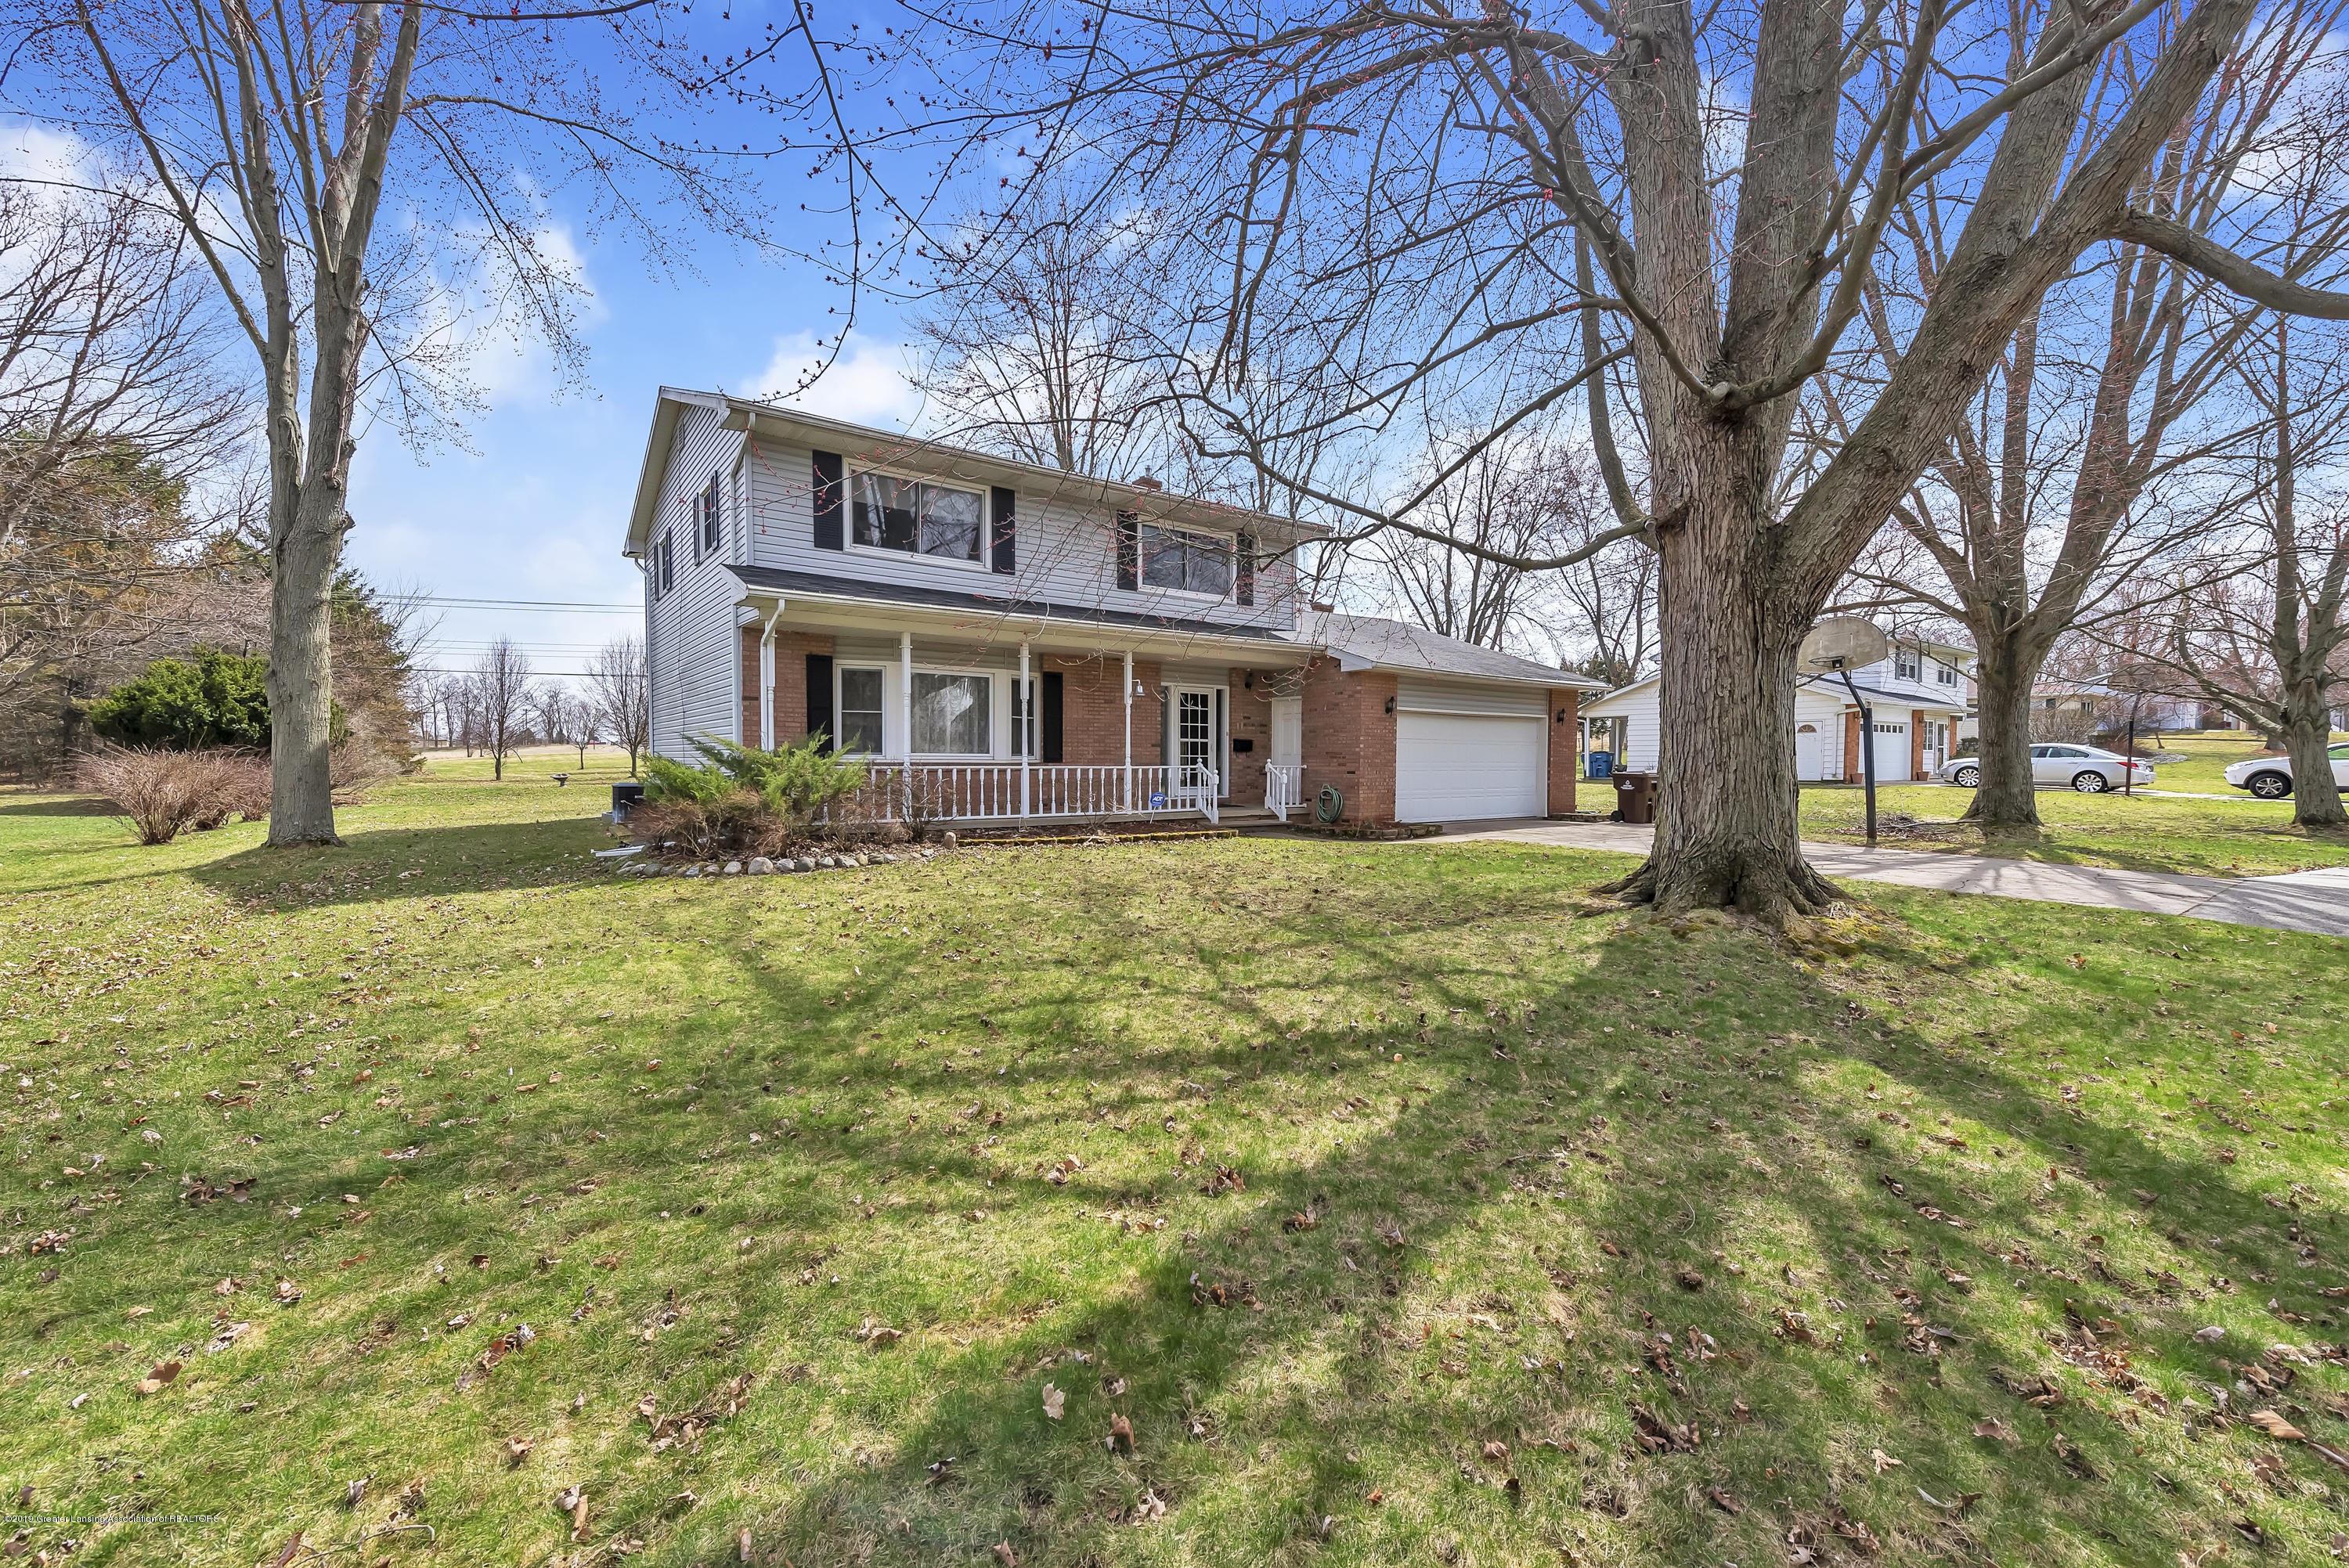 601 Raeburn Rd - 601-Raeburn-Road-Eaton-Rapids-Michigan-w - 2